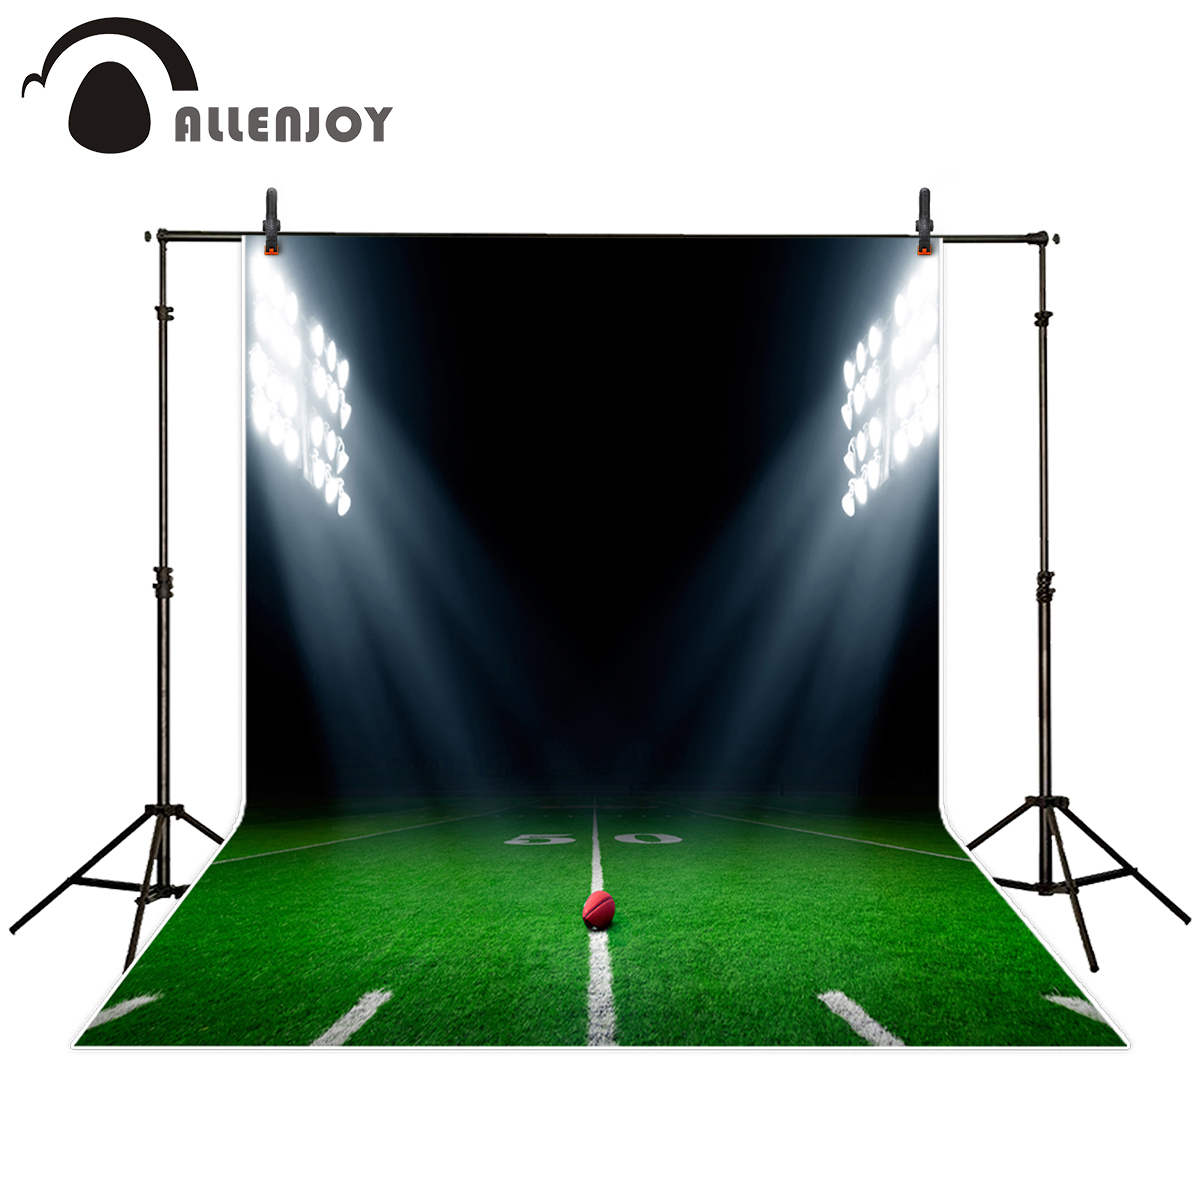 Allenjoy PILE SPORTS THEME background for photo studio American football stadium sport party boy photography backdrop printed seattle mariners felix hernandez photo photo sport poster